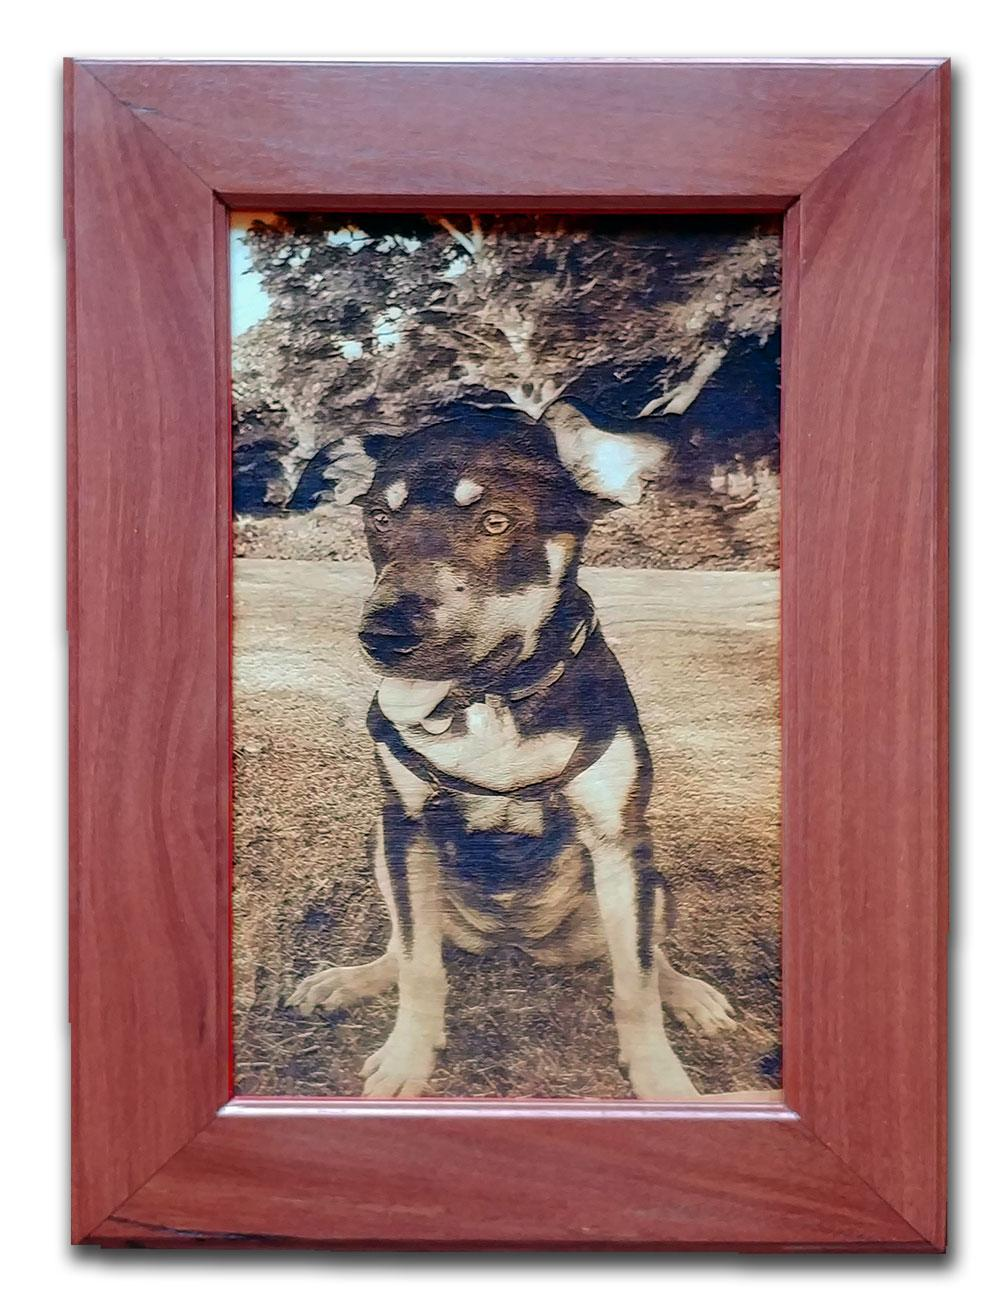 Dog with custom jarrah frame